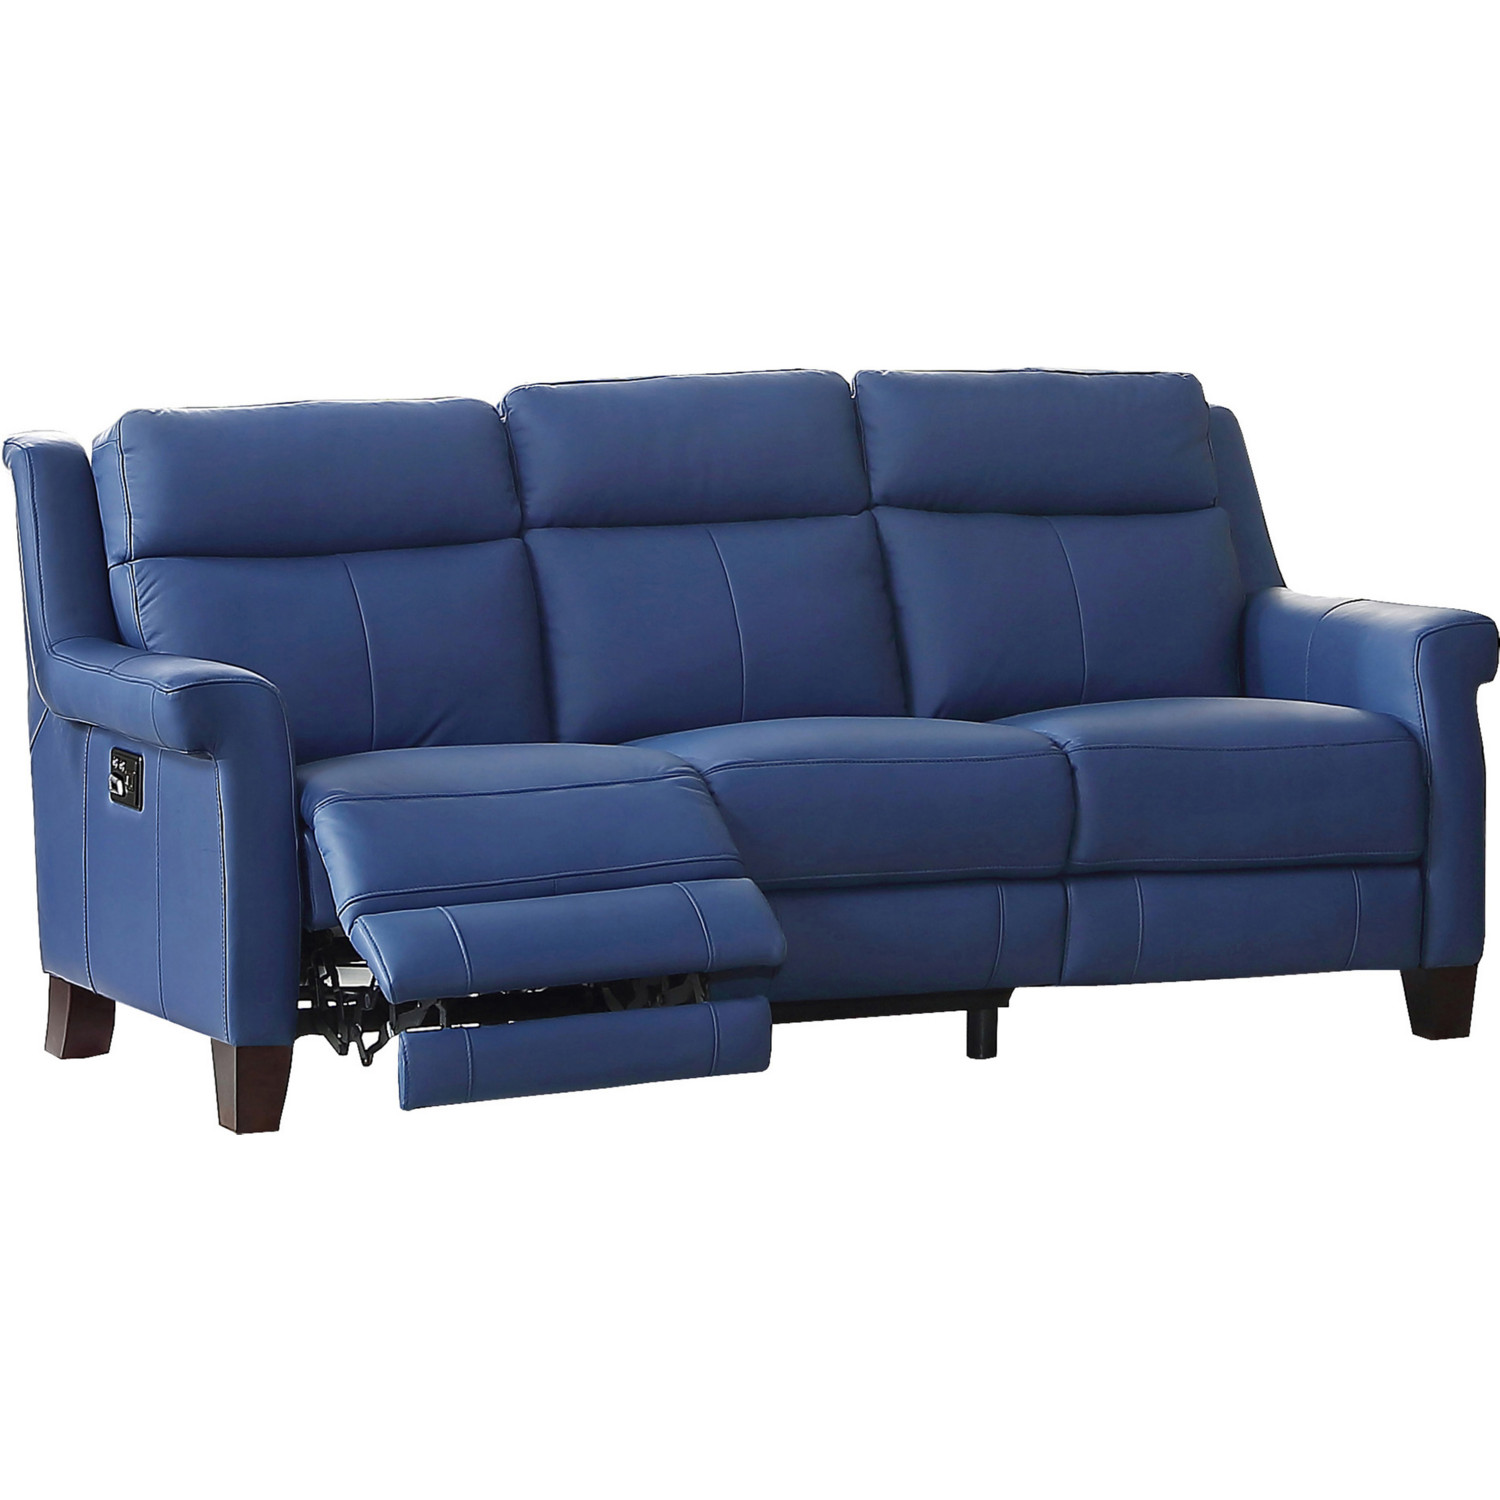 Amax Leather Dolceslc Dolce 100 Leather 3 Piece Set Power  ~ Leggett And Platt Leather Recliner Sofa